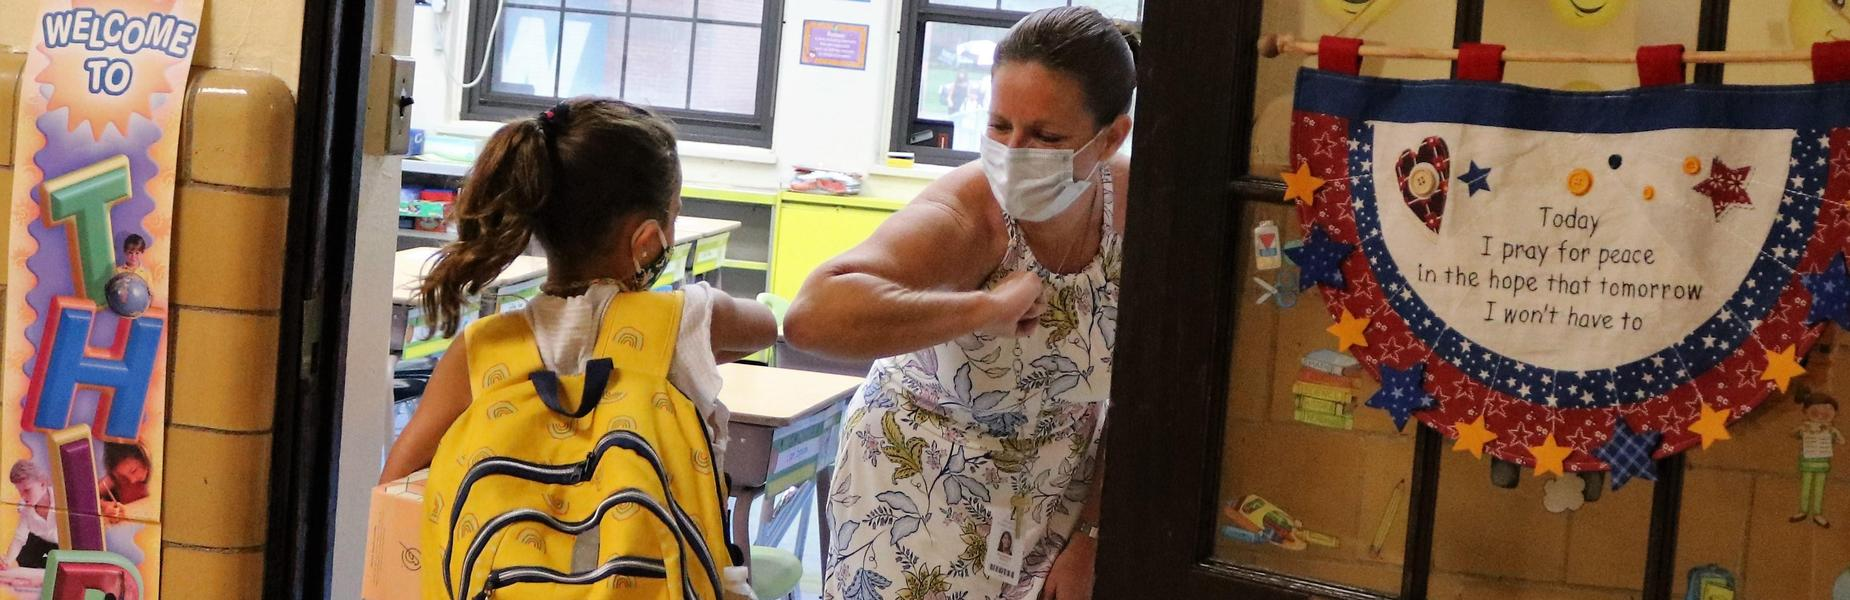 Wilson School third grade teacher Maureen Willis exchanges elbow bumps with her students as they arrive for their first day of school on Sept. 10.